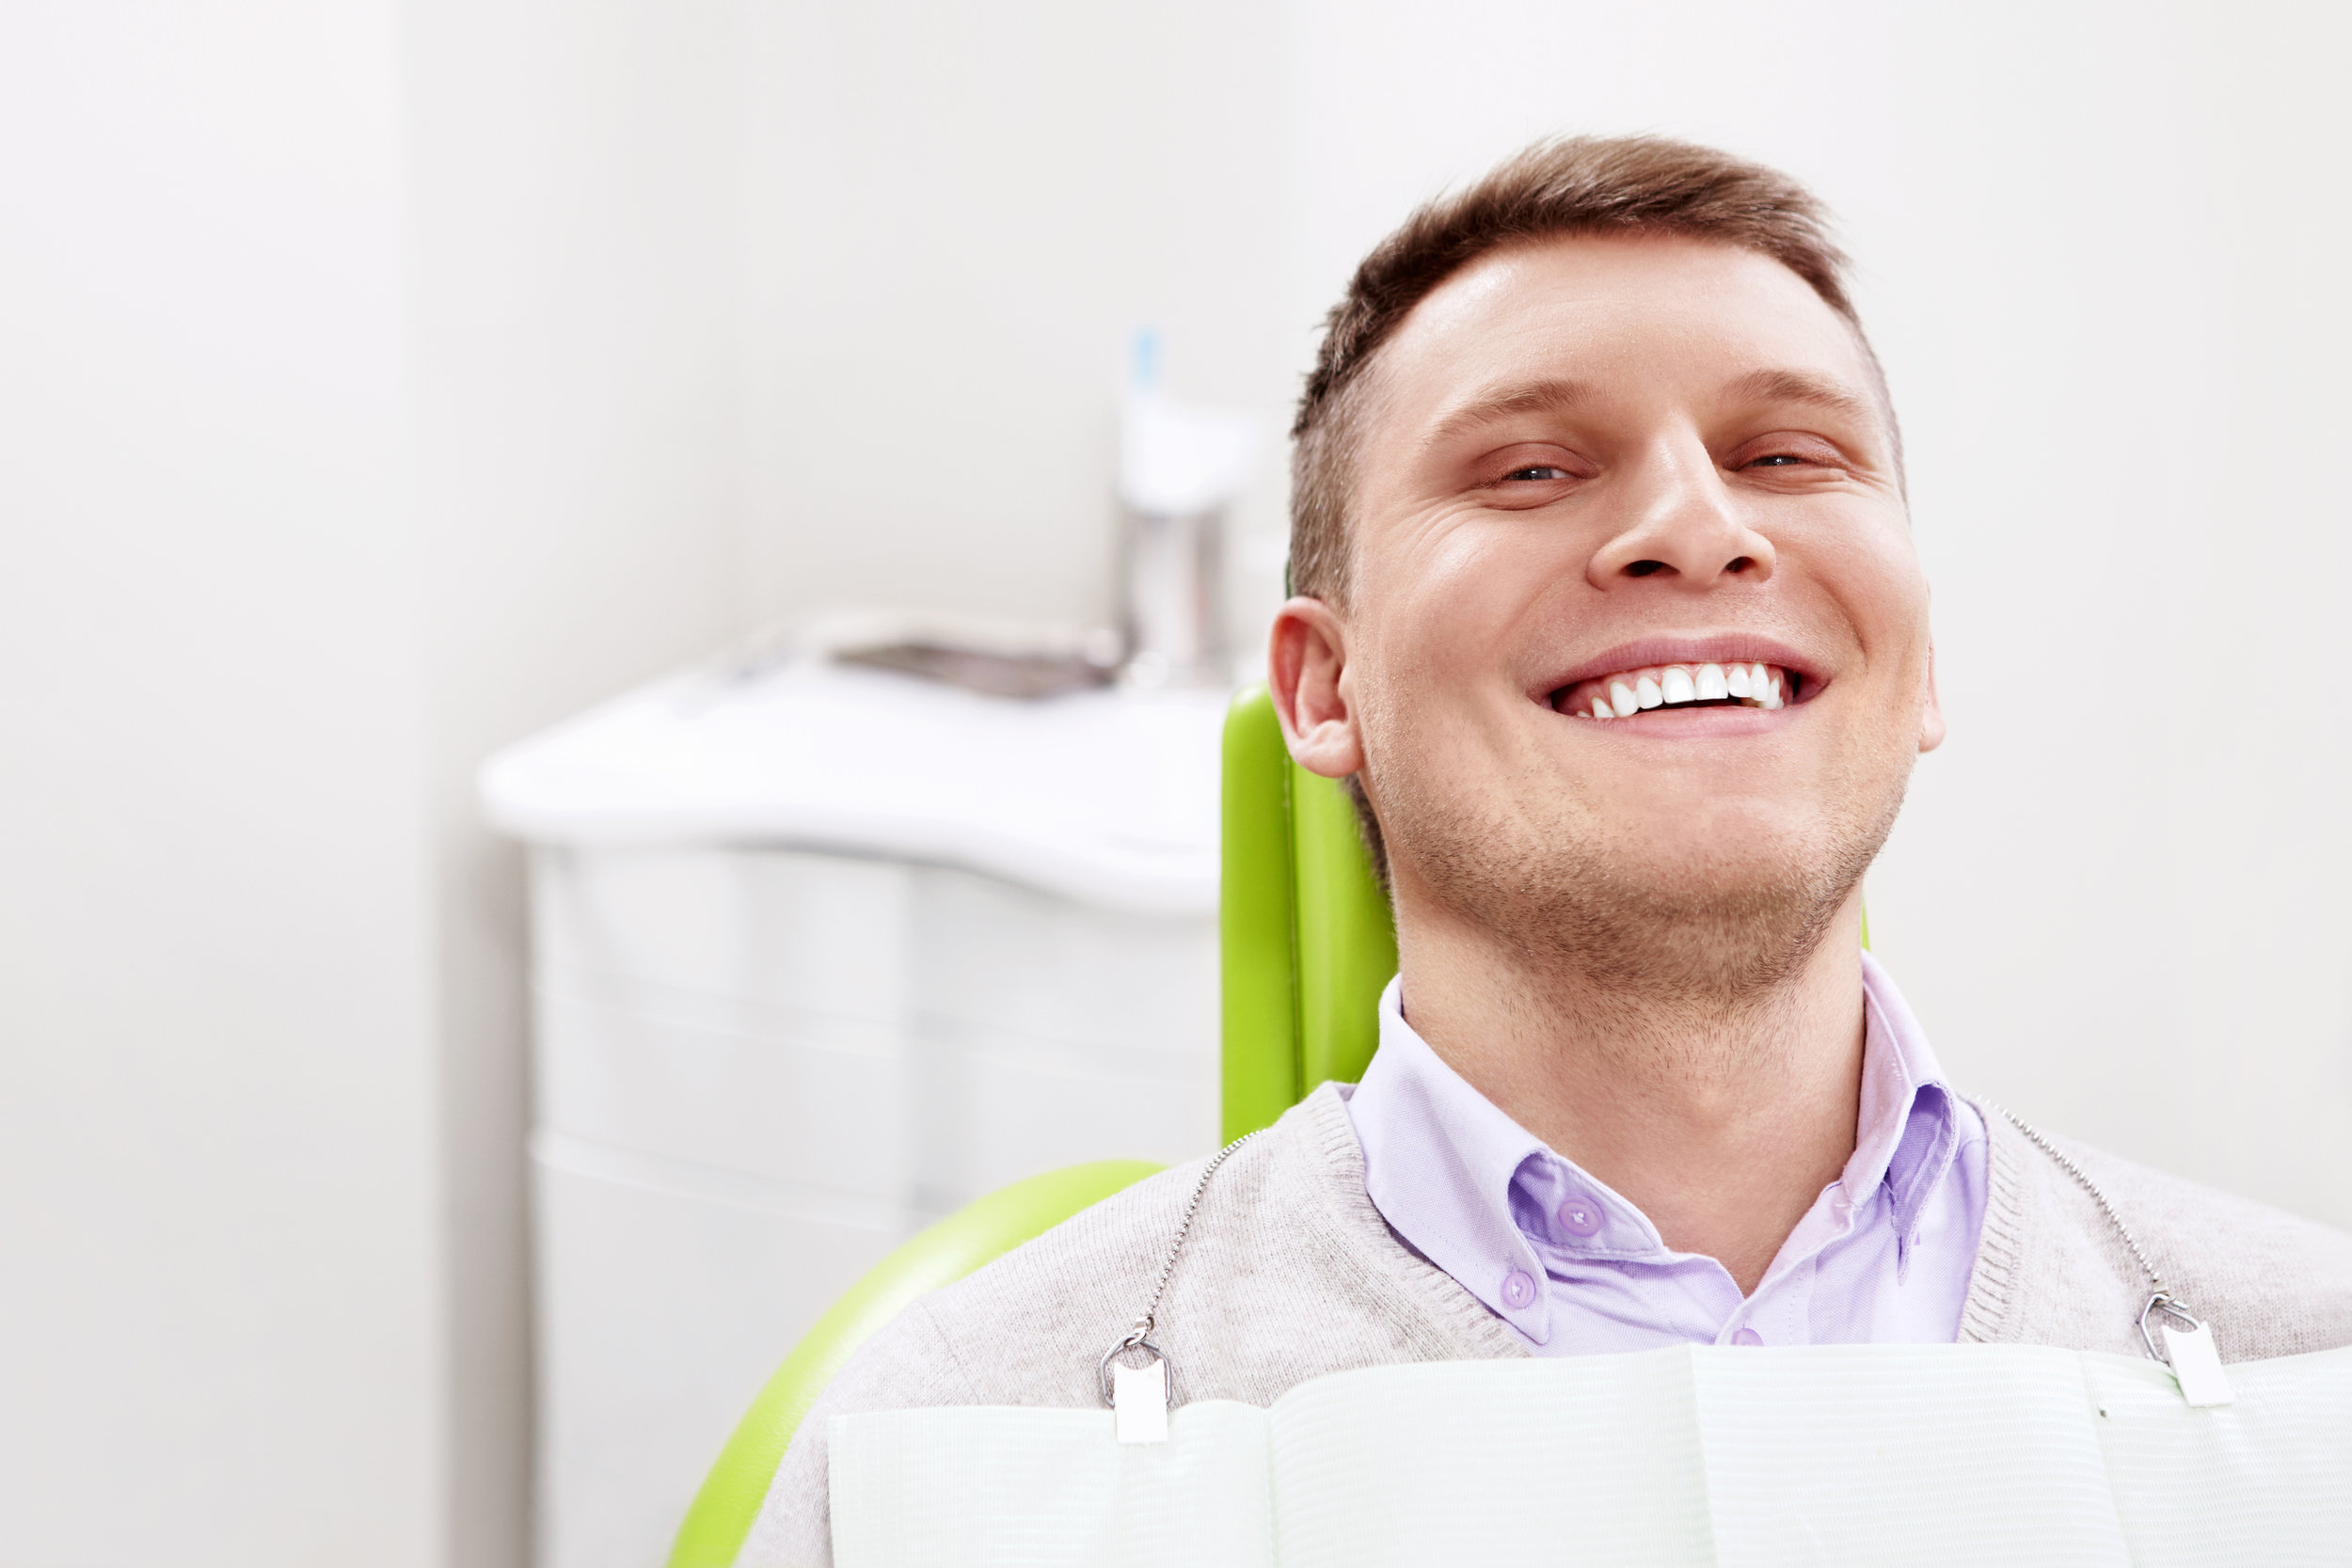 Oral Sedation - At Round Hill Smile Design, we offer painless oral sedation for a pleasant, relaxing experience during your procedure.